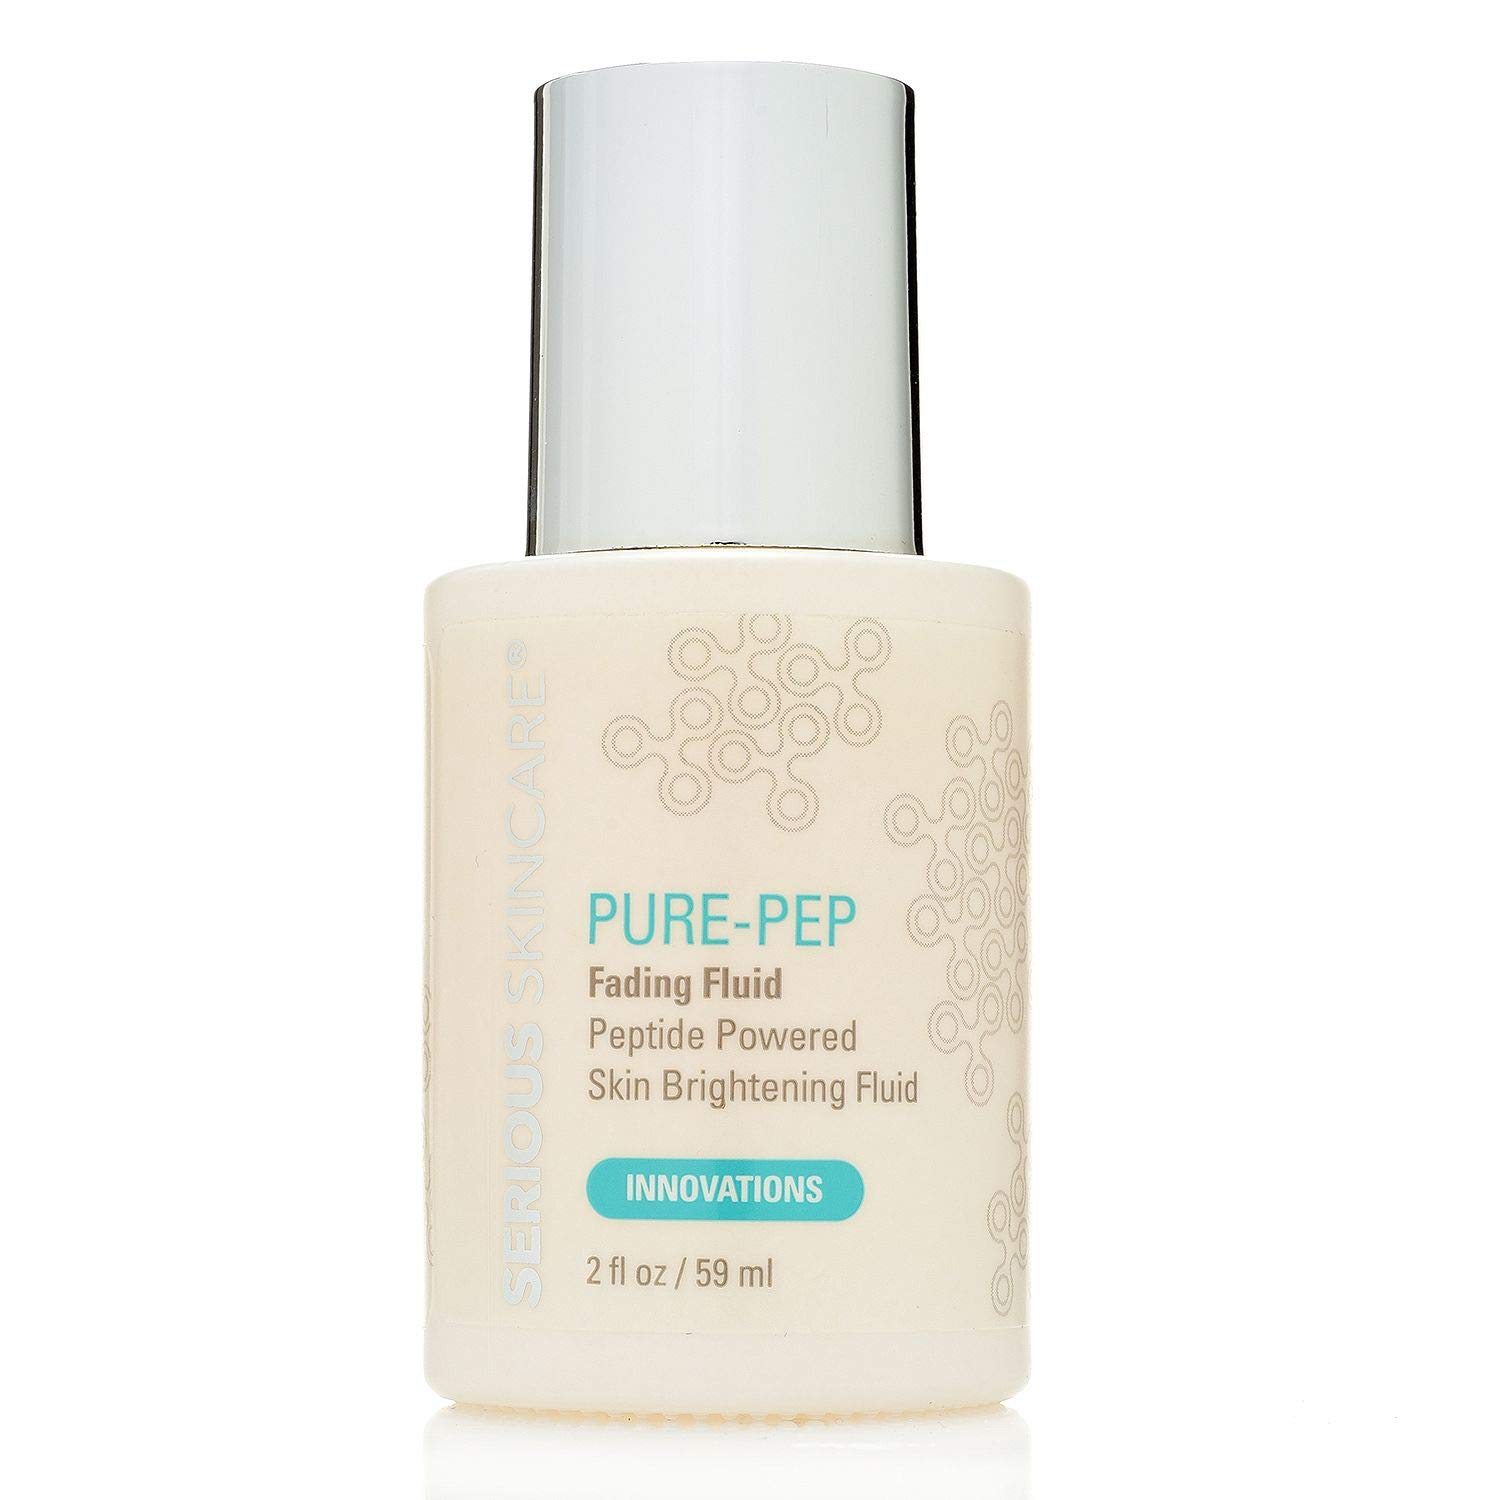 Serious Skincare Pure-pep Fading Fluid for Skin Brightening 2 Fl Oz